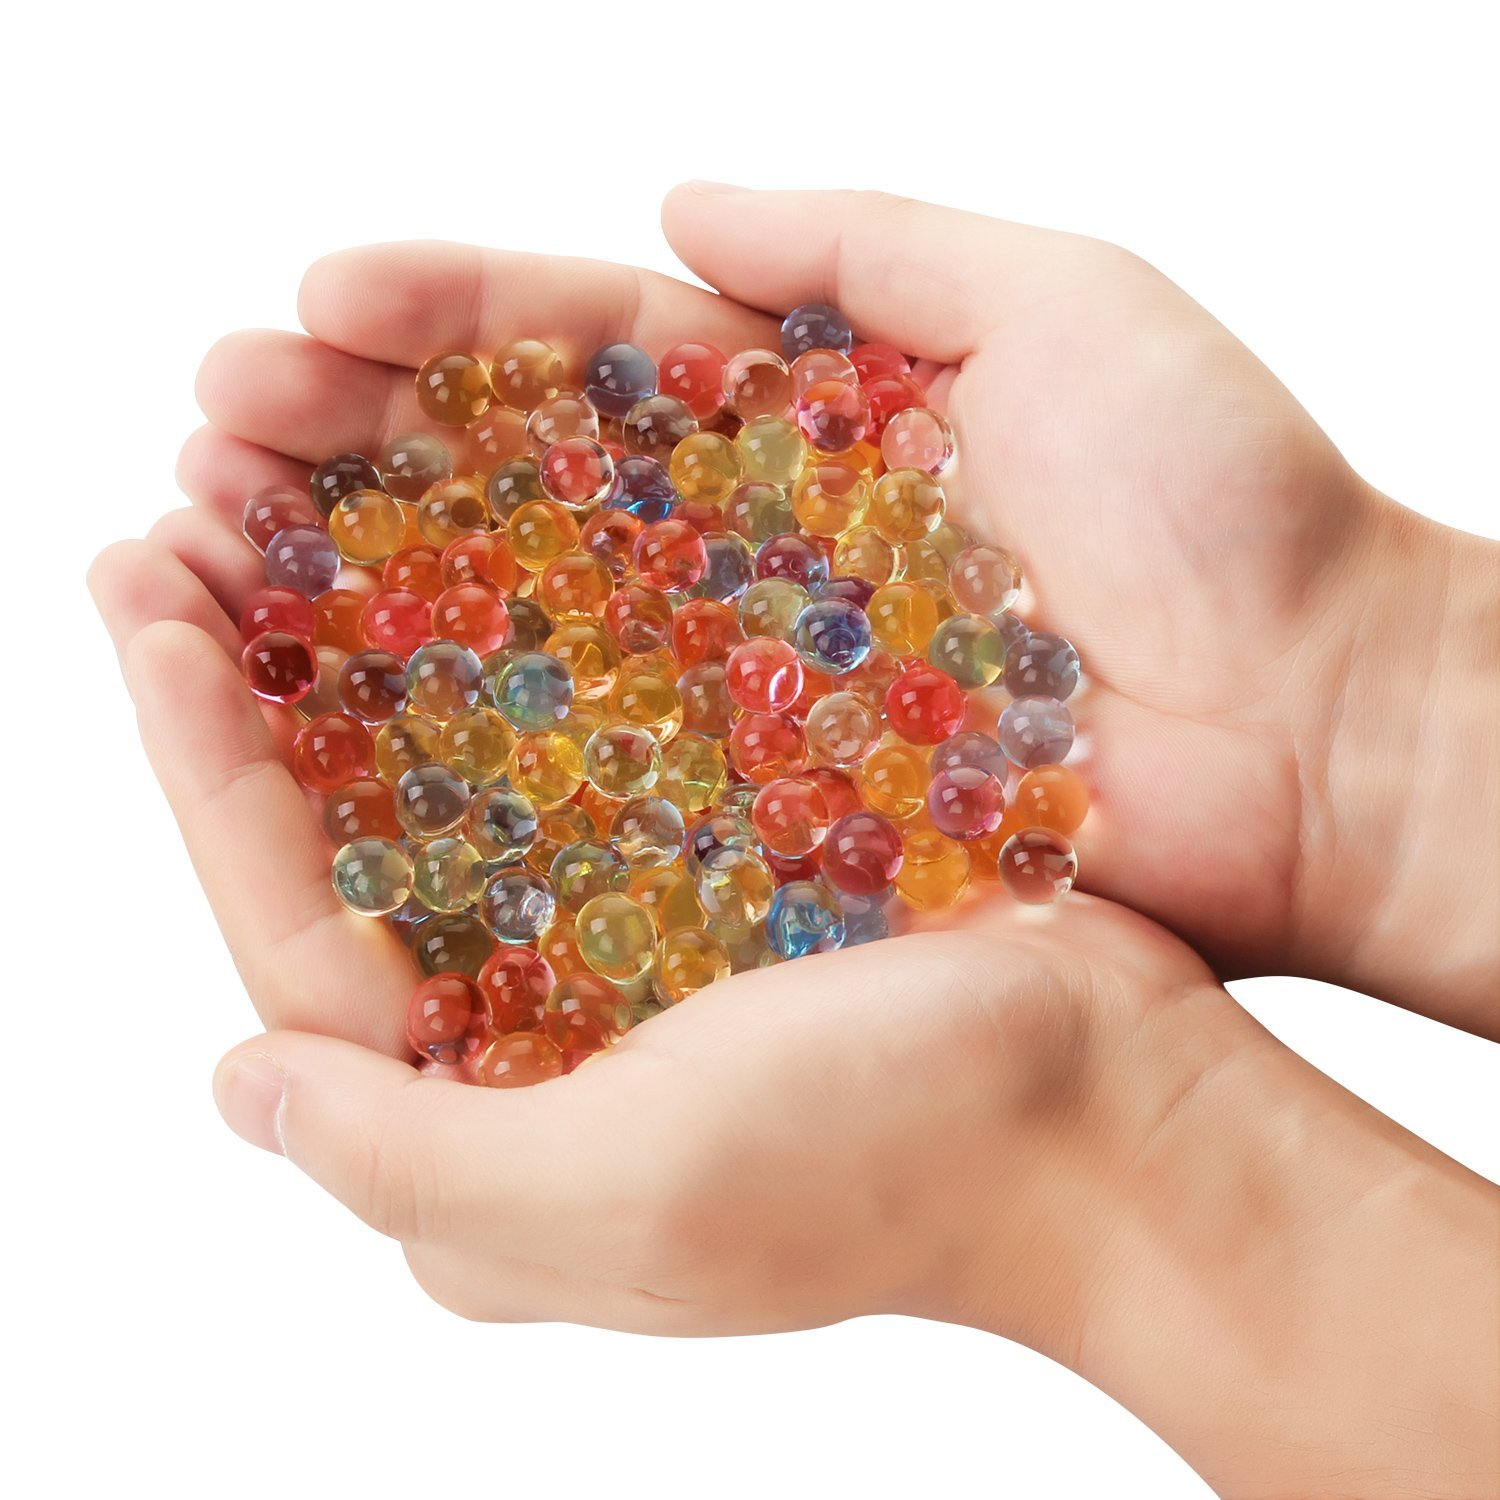 8000PCS/Box Pearl Shaped Crystal Soil Water Loose Beads Mud Grow Magic Jelly Balls Home Decor